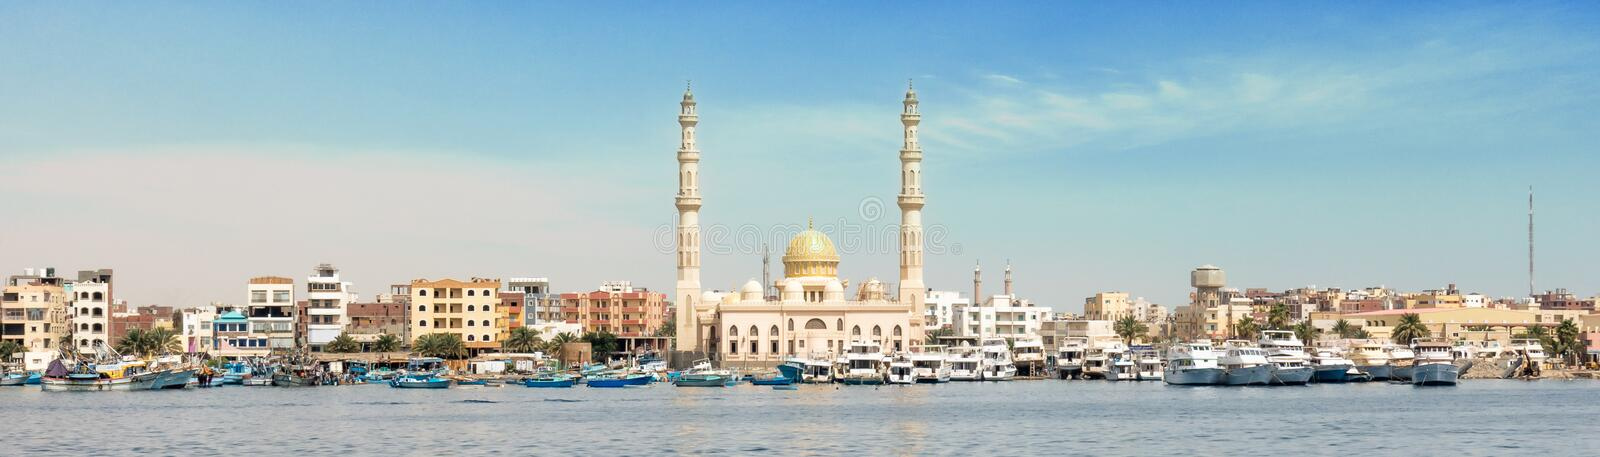 Harbor of Hurghada in Egypt stock image